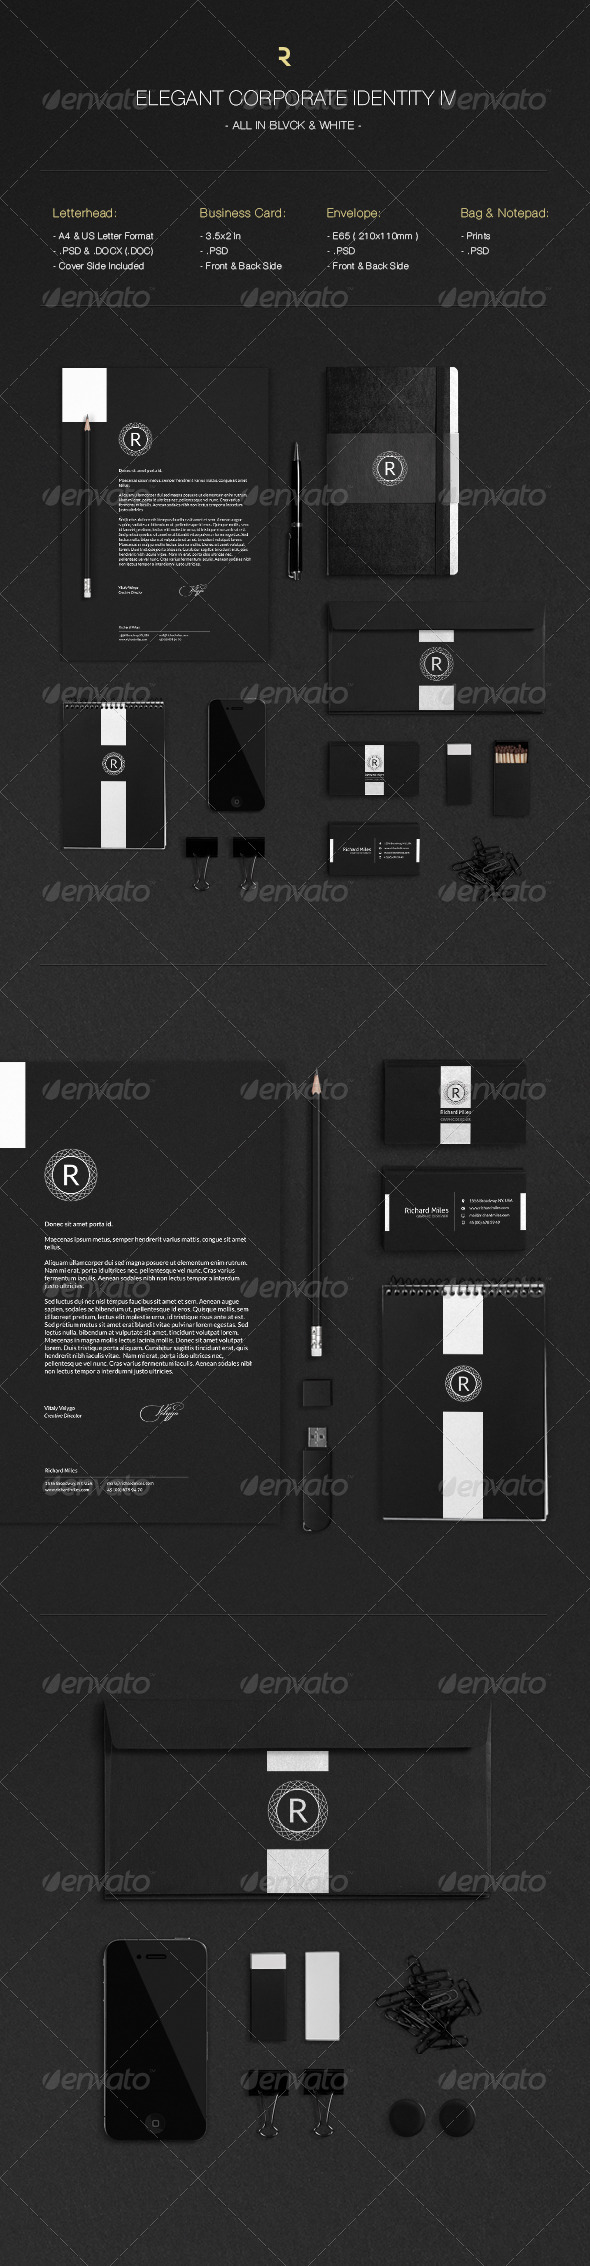 Elegant Corporate Identity IV - Stationery Print Templates